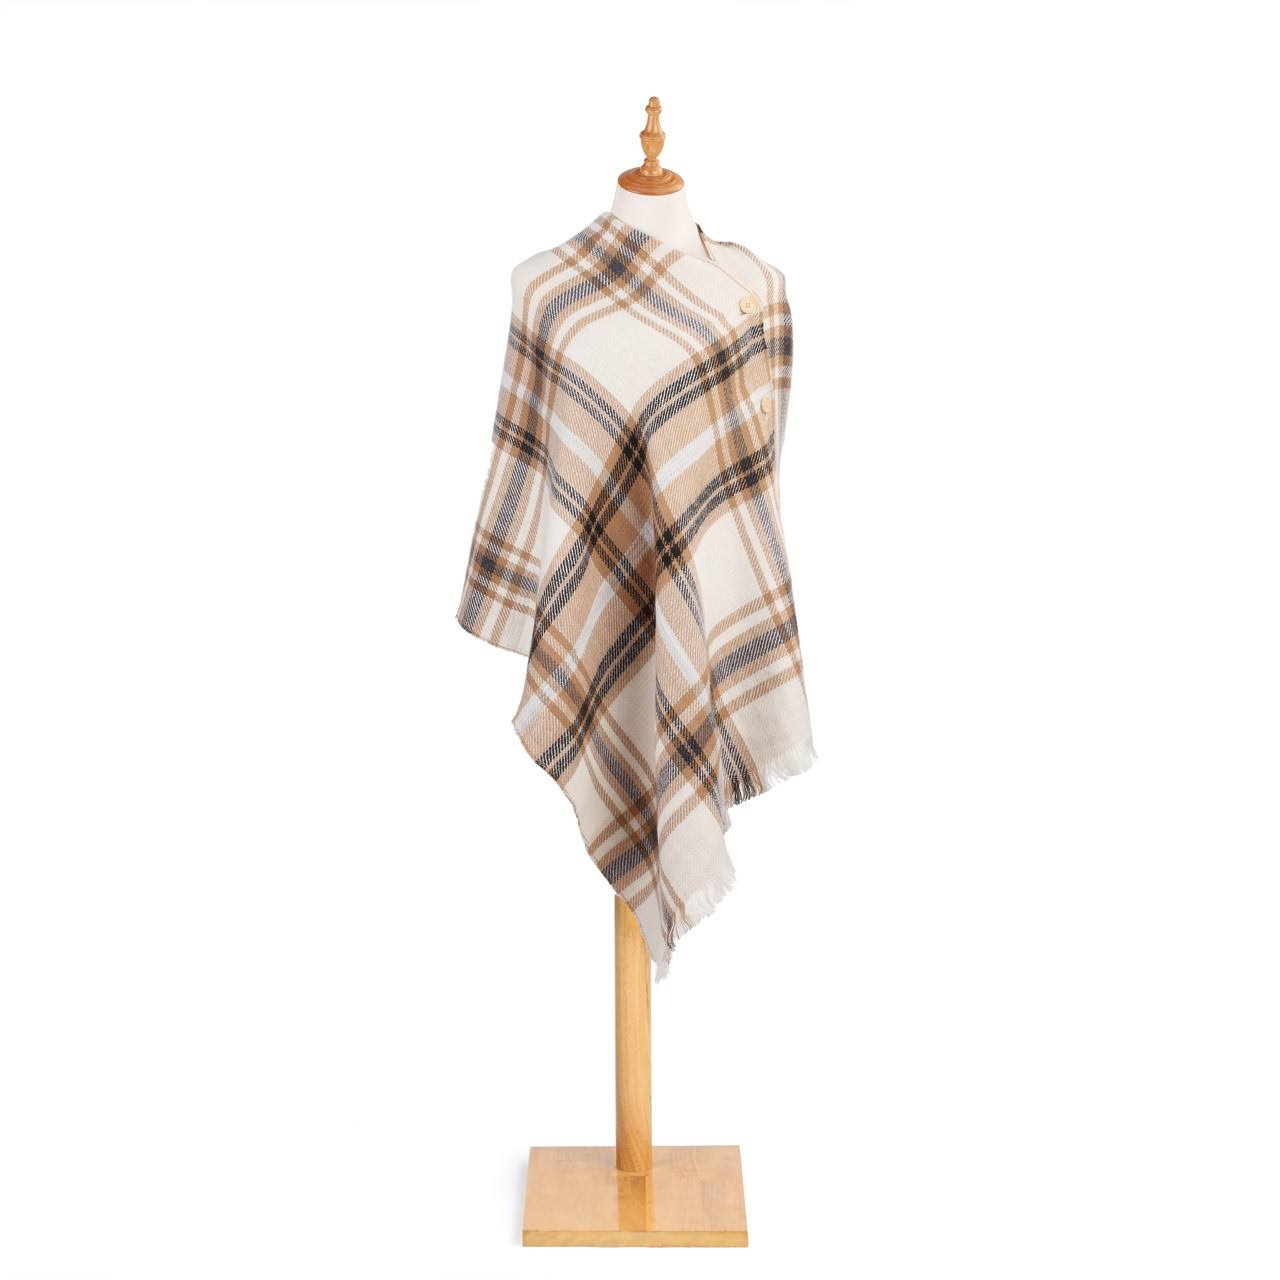 Demdaco Reversible Button Acrylic Fabric Shawl Poncho - Tan and White Plaid, One Size